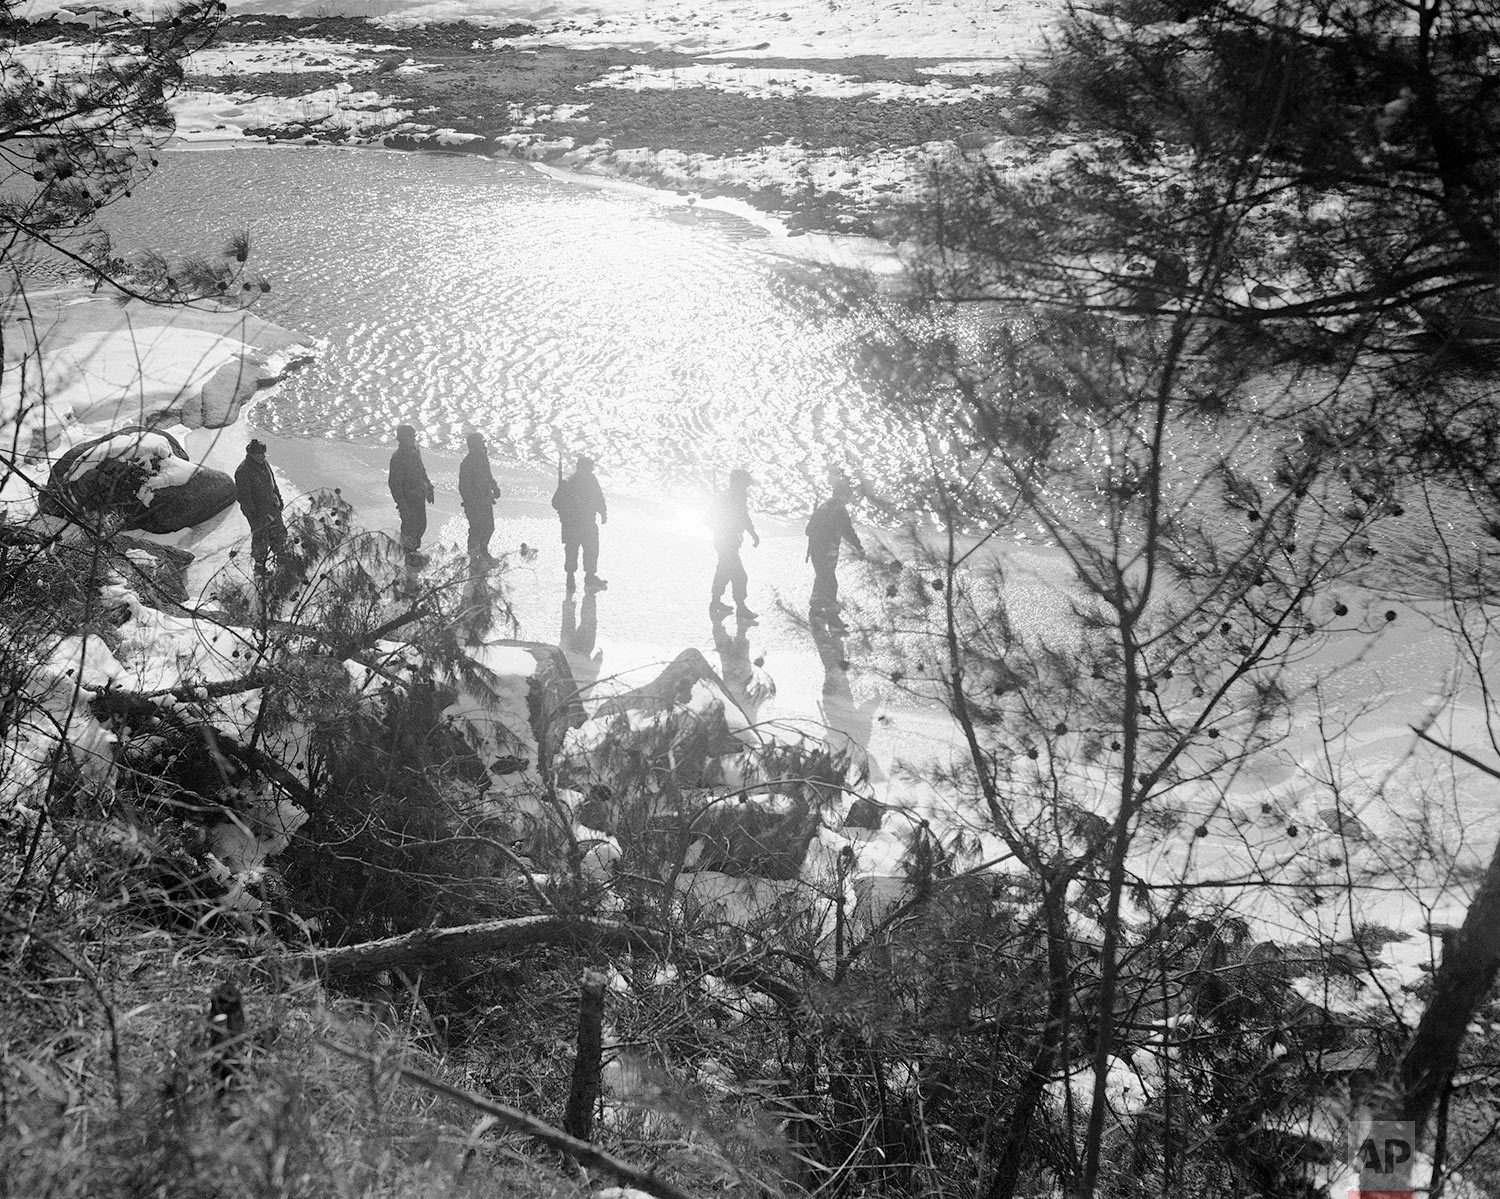 Cold winter sun creates a deceptively peaceful scene as it silhouettes an early morning patrol setting out over the Icy shore of a Korean stream in the Wonju area on Jan. 25, 1951. Allied patrols probing north of Wonju were finding little evidence of enemy concentrations. (AP Photo/Max Desfor)